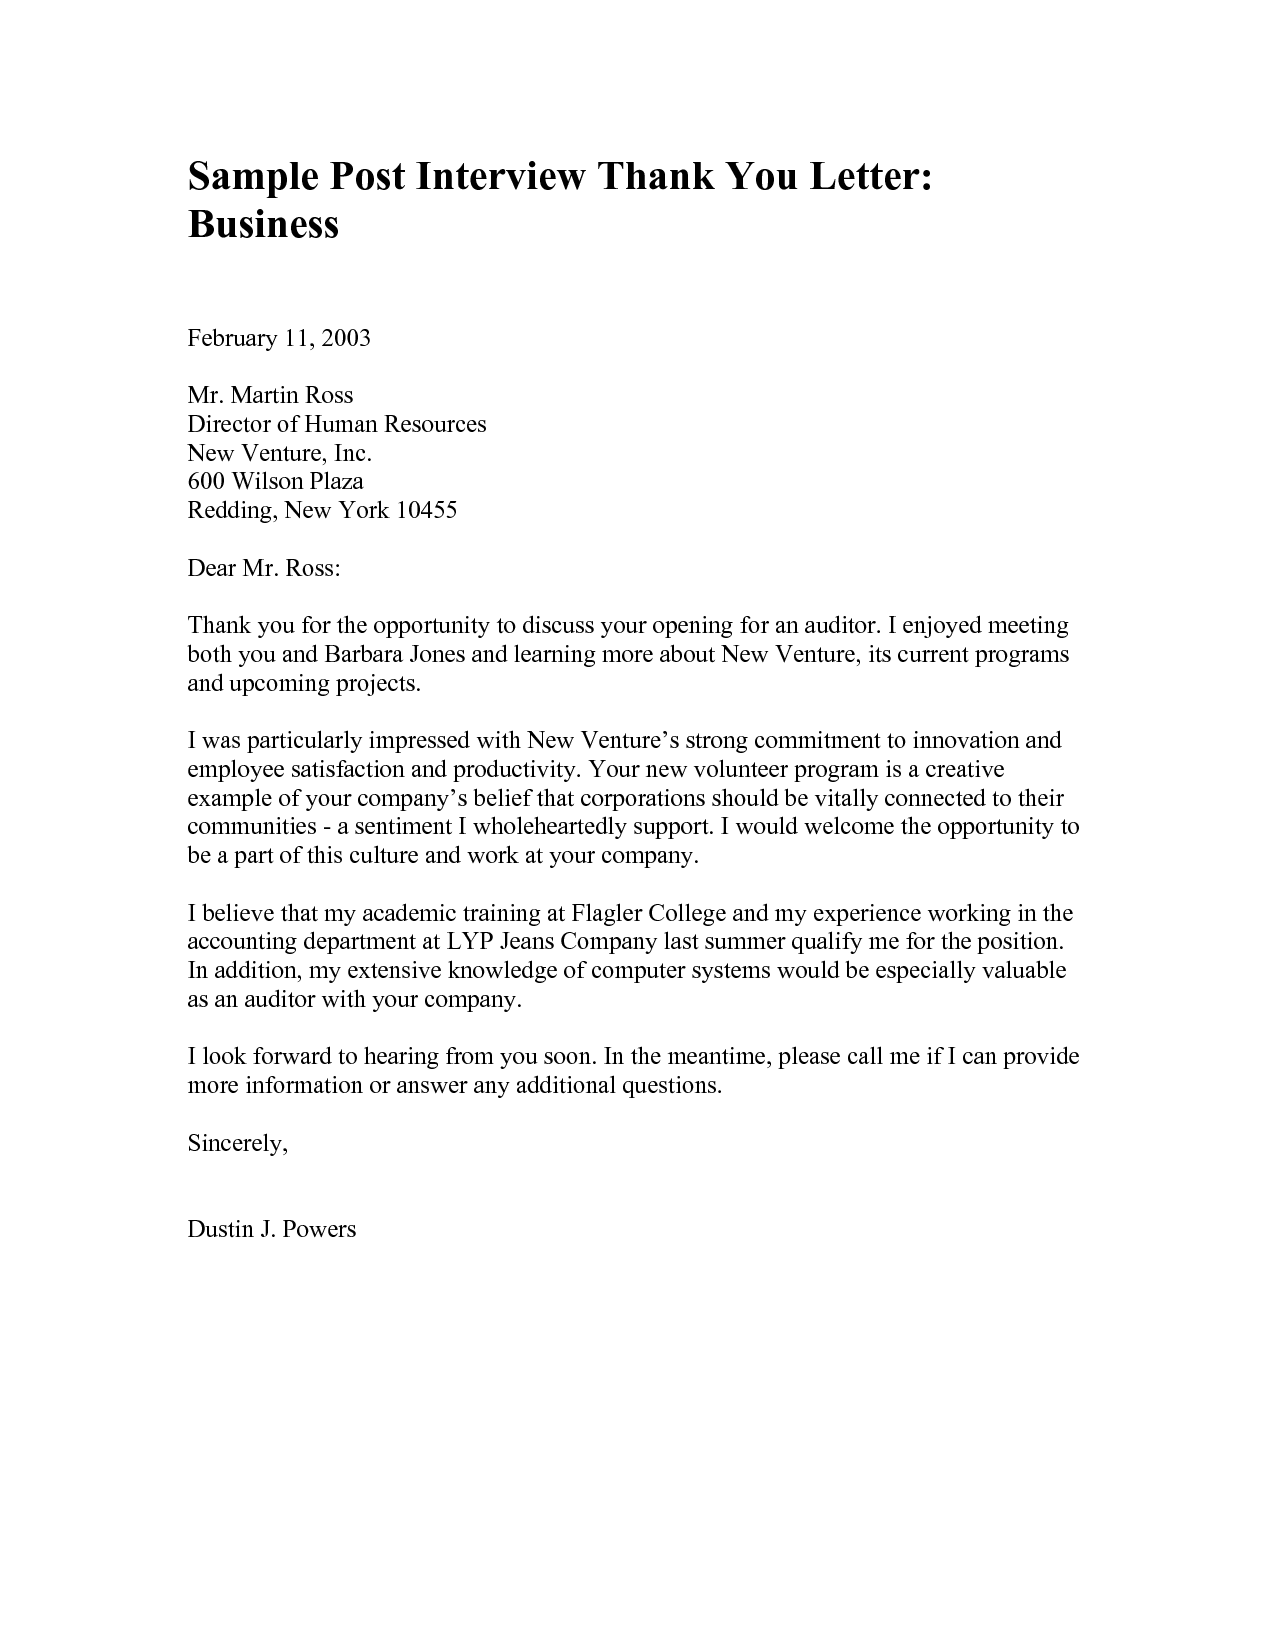 Free Printable Business Thank You Letter Template